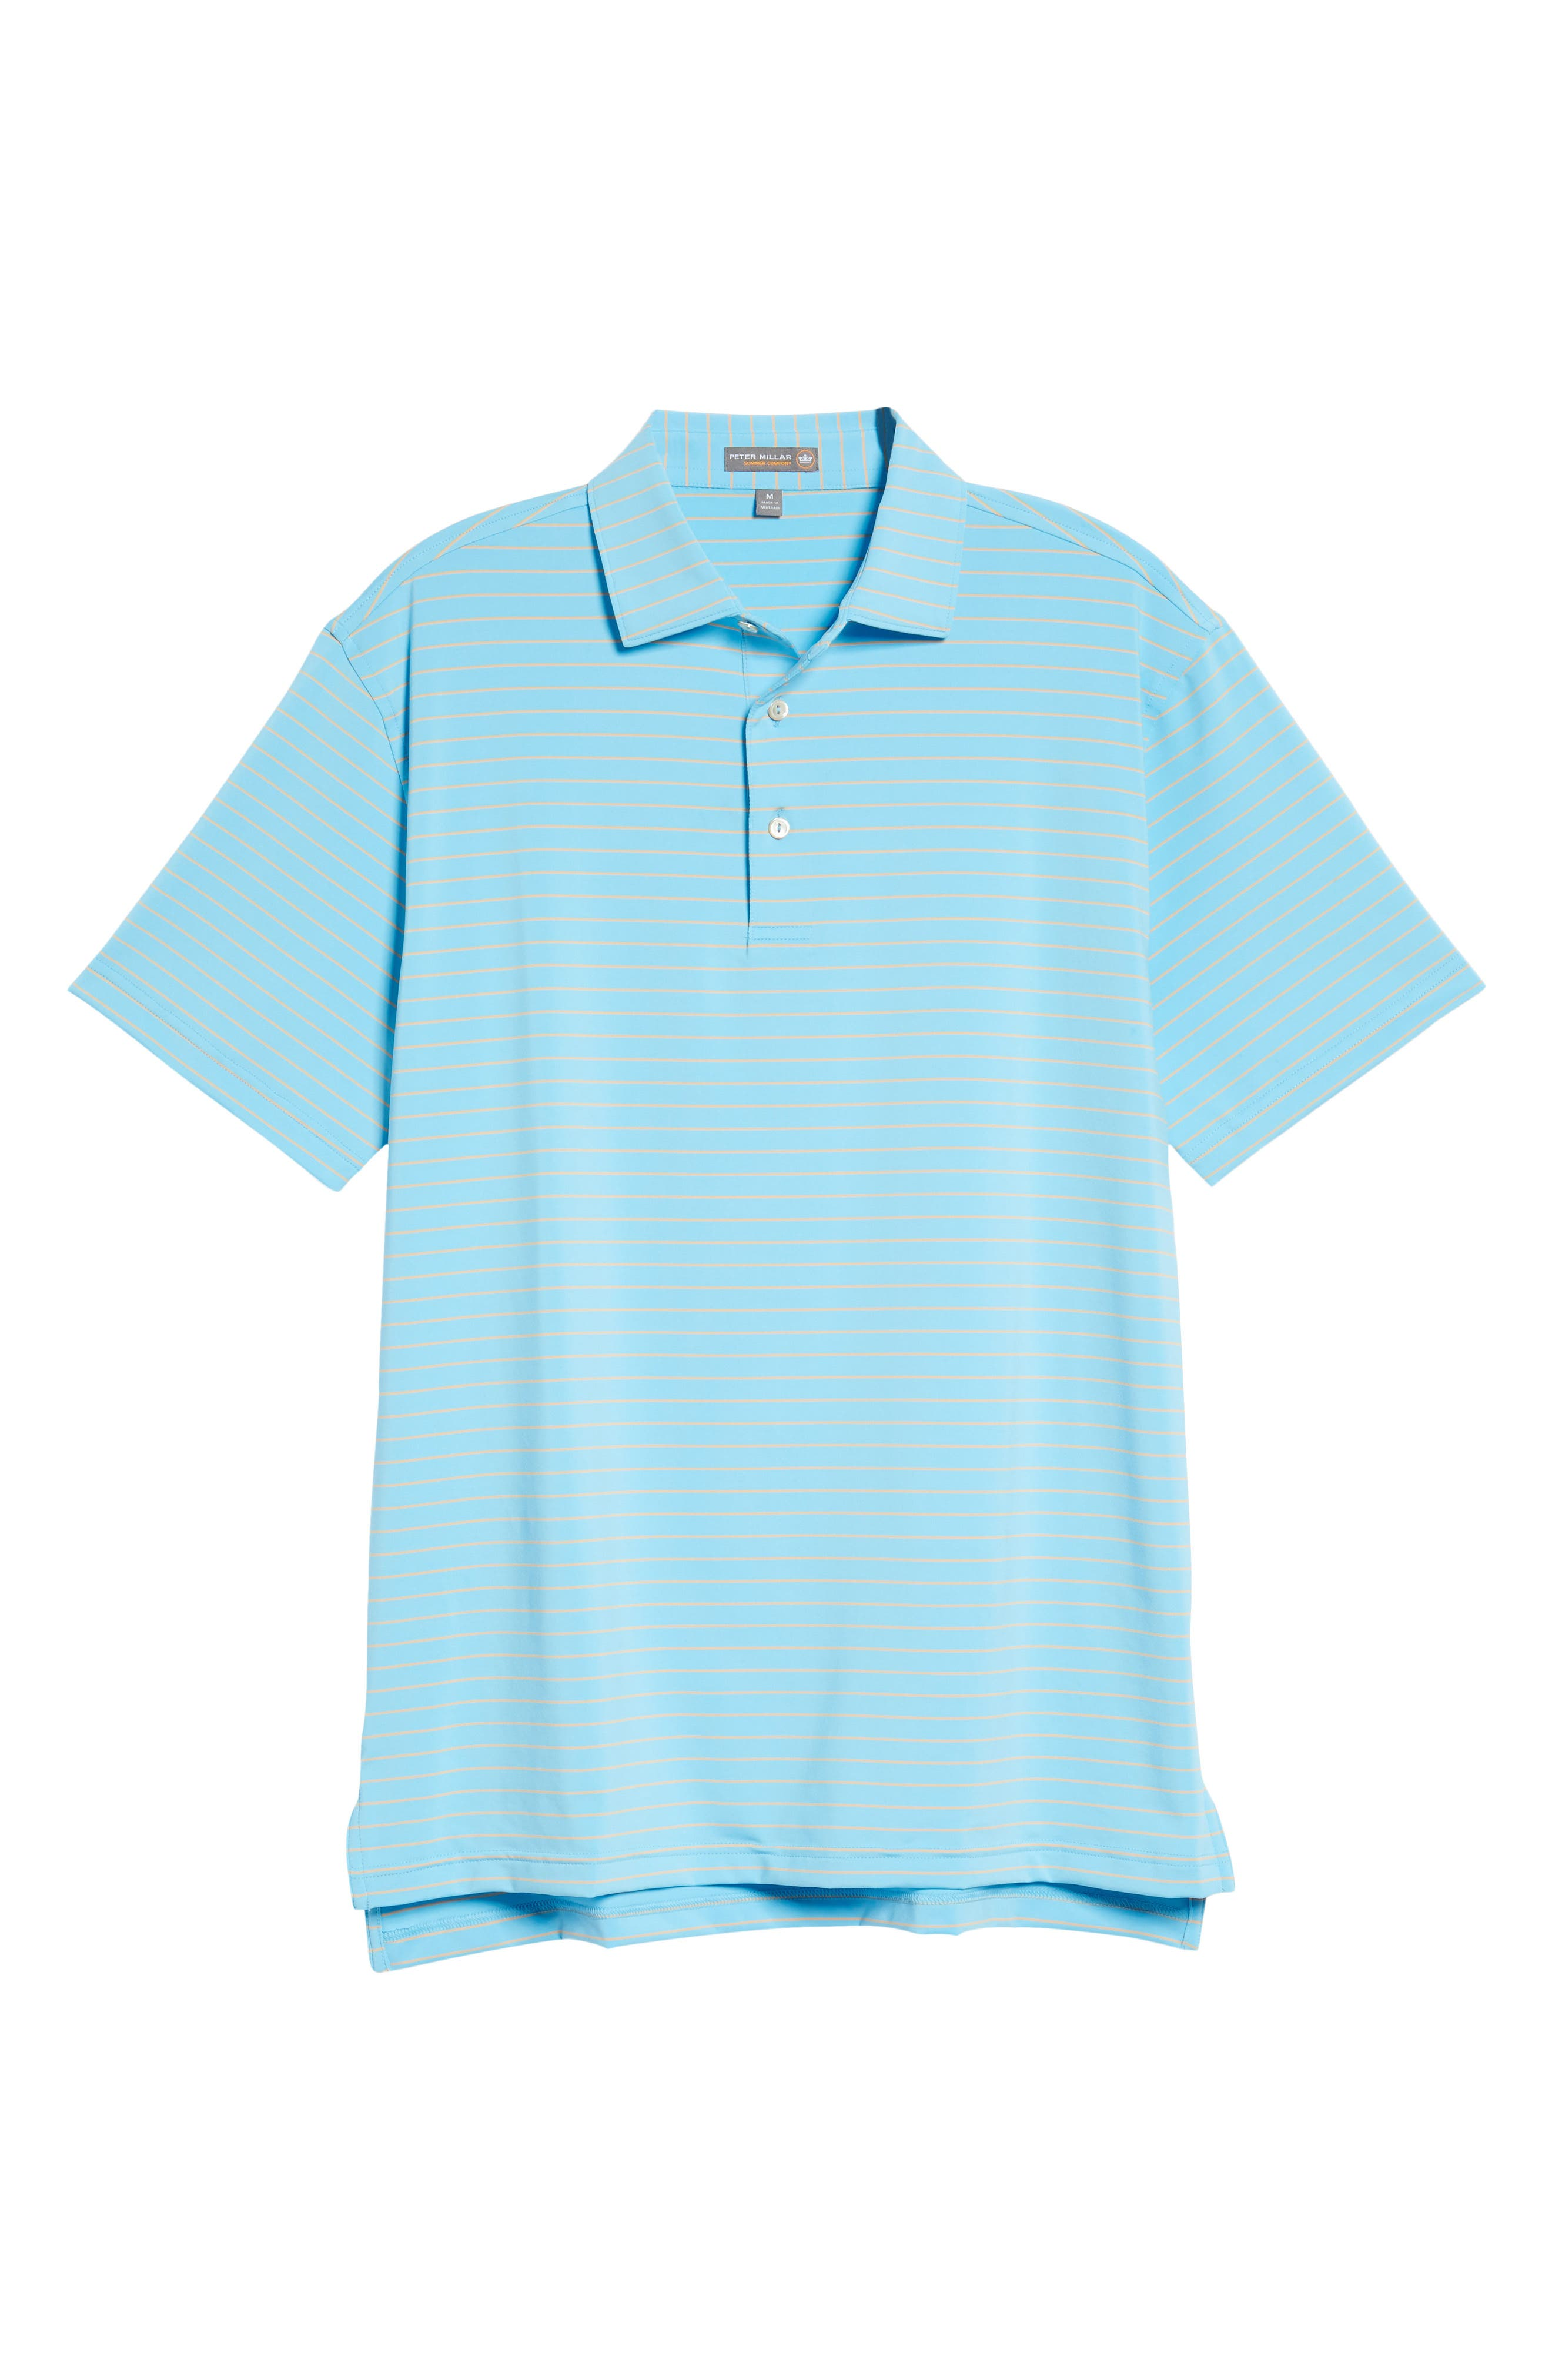 Halifax Pinstripe Stretch Jersey Polo,                             Alternate thumbnail 6, color,                             Grotto Blue